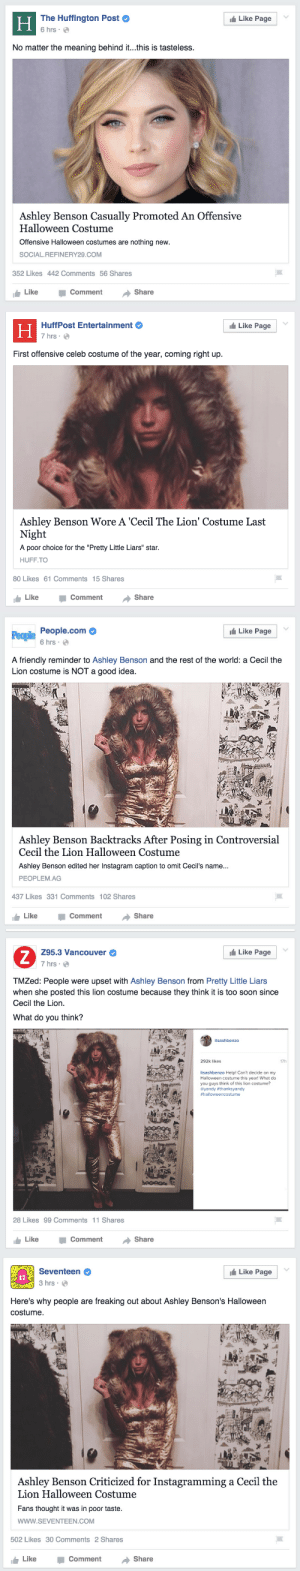 "baaaaoooo:  tfw news outlets and media are way more outraged by a celebrity in a cecil the lion costume than they ever were/will be about racist halloween costumes fetishizing and sexualizing people of color and their cultures. so many celebrities have done blackface for halloween and news outlets weren't /this/ upset. i hate everything : The Huffington Post  6 hrs :  Like Page  Н  No matter the meaning behind it...this is tasteless.  Ashley Benson Casually Promoted An Offensive  Halloween Costume  Offensive Halloween costumes are nothing new.  SOCIAL.REFINERY29.COM  352 Likes 442 Comments 56 Shares  Share  Like  Comment   Like Page  HuffPost Entertainment  Н  7 hrs ·  O  First offensive celeb costume of the year, coming right up.  Ashley Benson Wore A 'Cecil The Lion' Costume Last  Night  A poor choice for the ""Pretty Little Liars"" star.  HUFF.TO  80 Likes 61 Comments 15 Shares  Like  Share  Comment   t Like Page  People.com  People  6 hrs · O  A friendly reminder to Ashley Benson and the rest of the world: a Cecil the  Lion costume is NOT a good idea.  Ashley Benson Backtracks After Posing in Controversial  Cecil the Lion Halloween Costume  Ashley Benson edited her Instagram caption to omit Cecil's name...  PEOPLEM.AG  437 Likes 331 Comments 102 Shares  Share  Like  Comment   I Like Page  Z95.3 Vancouver  7 hrs · O  TMZed: People were upset with Ashley Benson from Pretty Little Liars  when she posted this lion costume because they think it is too soon since  Cecil the Lion.  What do you think?  itsashbenzo  292k likes  17h  itsashbenzo Help! Can't decide on my  Halloween costume this year! What do  you guys think of this lion costume?  @yandy #thanksyandy  #halloweencostume  28 Likes 99 Comments 11 Shares  Share  Like  Comment   Like Page  Seventeen  17  3 hrs · O  Here's why people are freaking out about Ashley Benson's Halloween  costume.  Ashley Benson Criticized for Instagramming a Cecil the  Lion Halloween Costume  Fans thought it was in poor taste.  www.SEVENTEEN.COM  502 Likes 30 Comments 2 Shares  Comment  Share  Like baaaaoooo:  tfw news outlets and media are way more outraged by a celebrity in a cecil the lion costume than they ever were/will be about racist halloween costumes fetishizing and sexualizing people of color and their cultures. so many celebrities have done blackface for halloween and news outlets weren't /this/ upset. i hate everything"